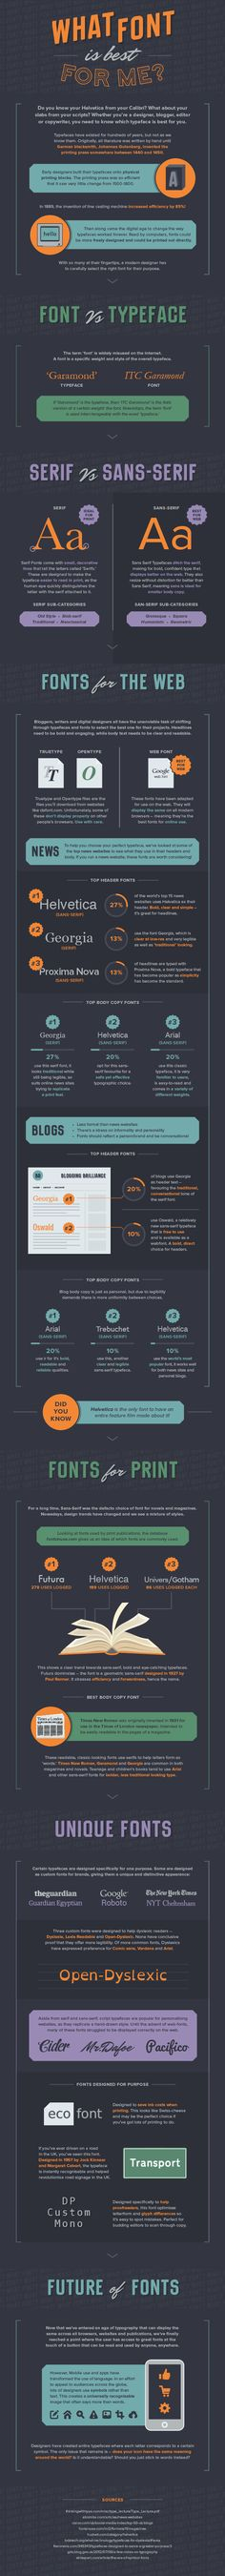 Educational infographic & Data Fonts Matter: Which Fonts Look Best On Web, On Print And For Dyslexic Readers. Image Description Fonts Matter: Which Web Design, Graphic Design Tips, Type Design, Design Elements, Typography Design, Branding Design, Logo Design, Typographie Fonts, Illustrator